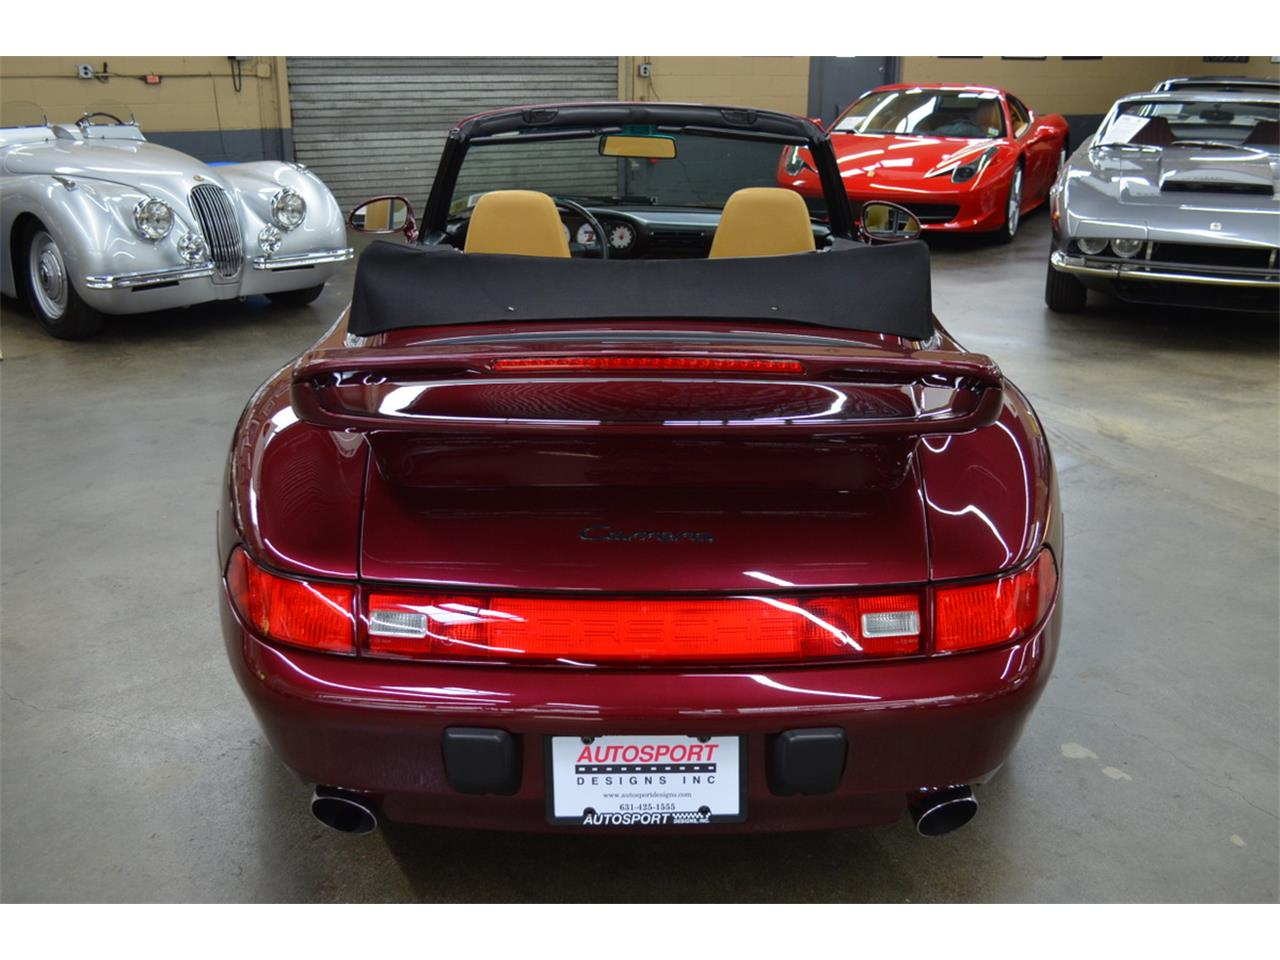 Large Picture of 1997 911 Carrera located in New York Offered by Autosport Designs Inc - QG4T